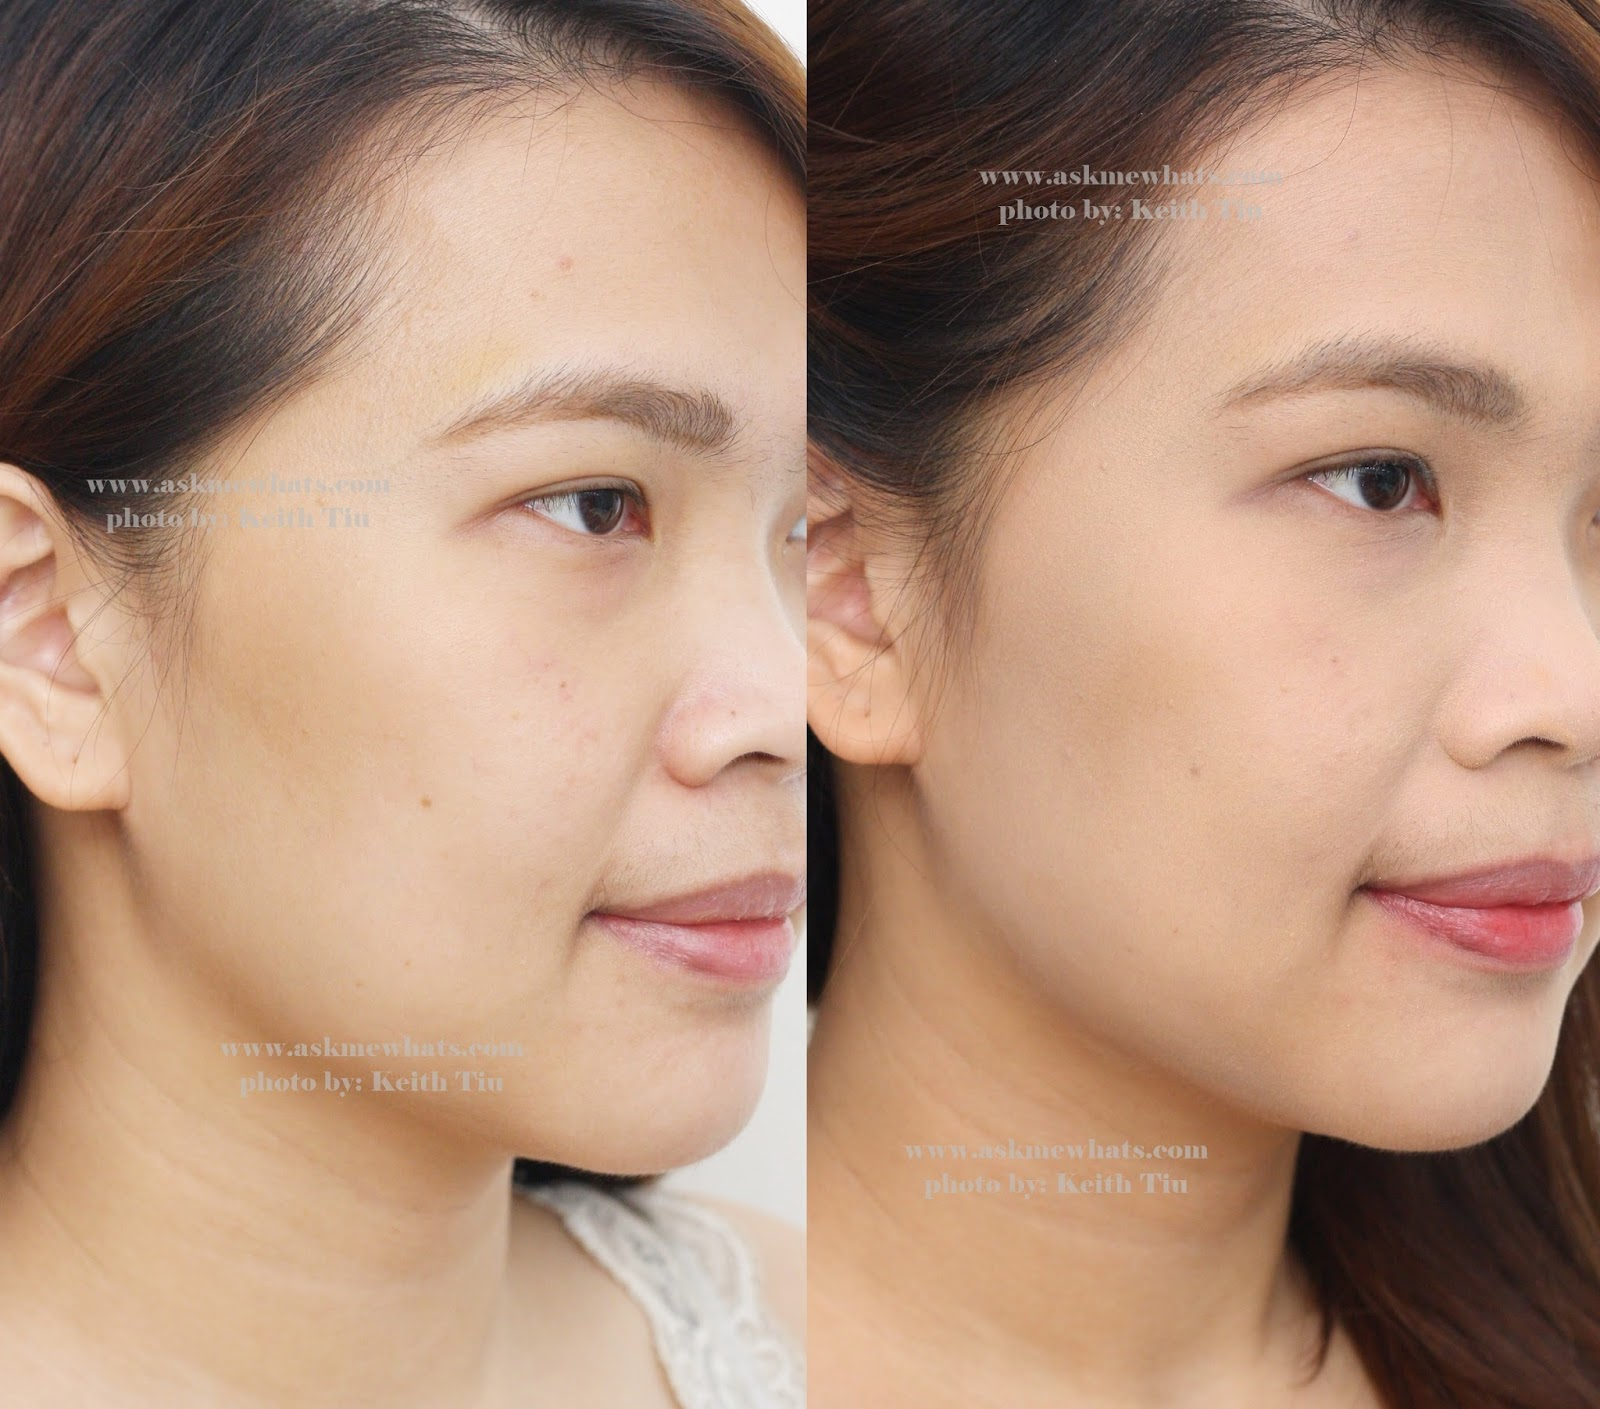 AskMeWhats - Top Beauty Blogger Philippines - Skincare Makeup Review Blog Philippines